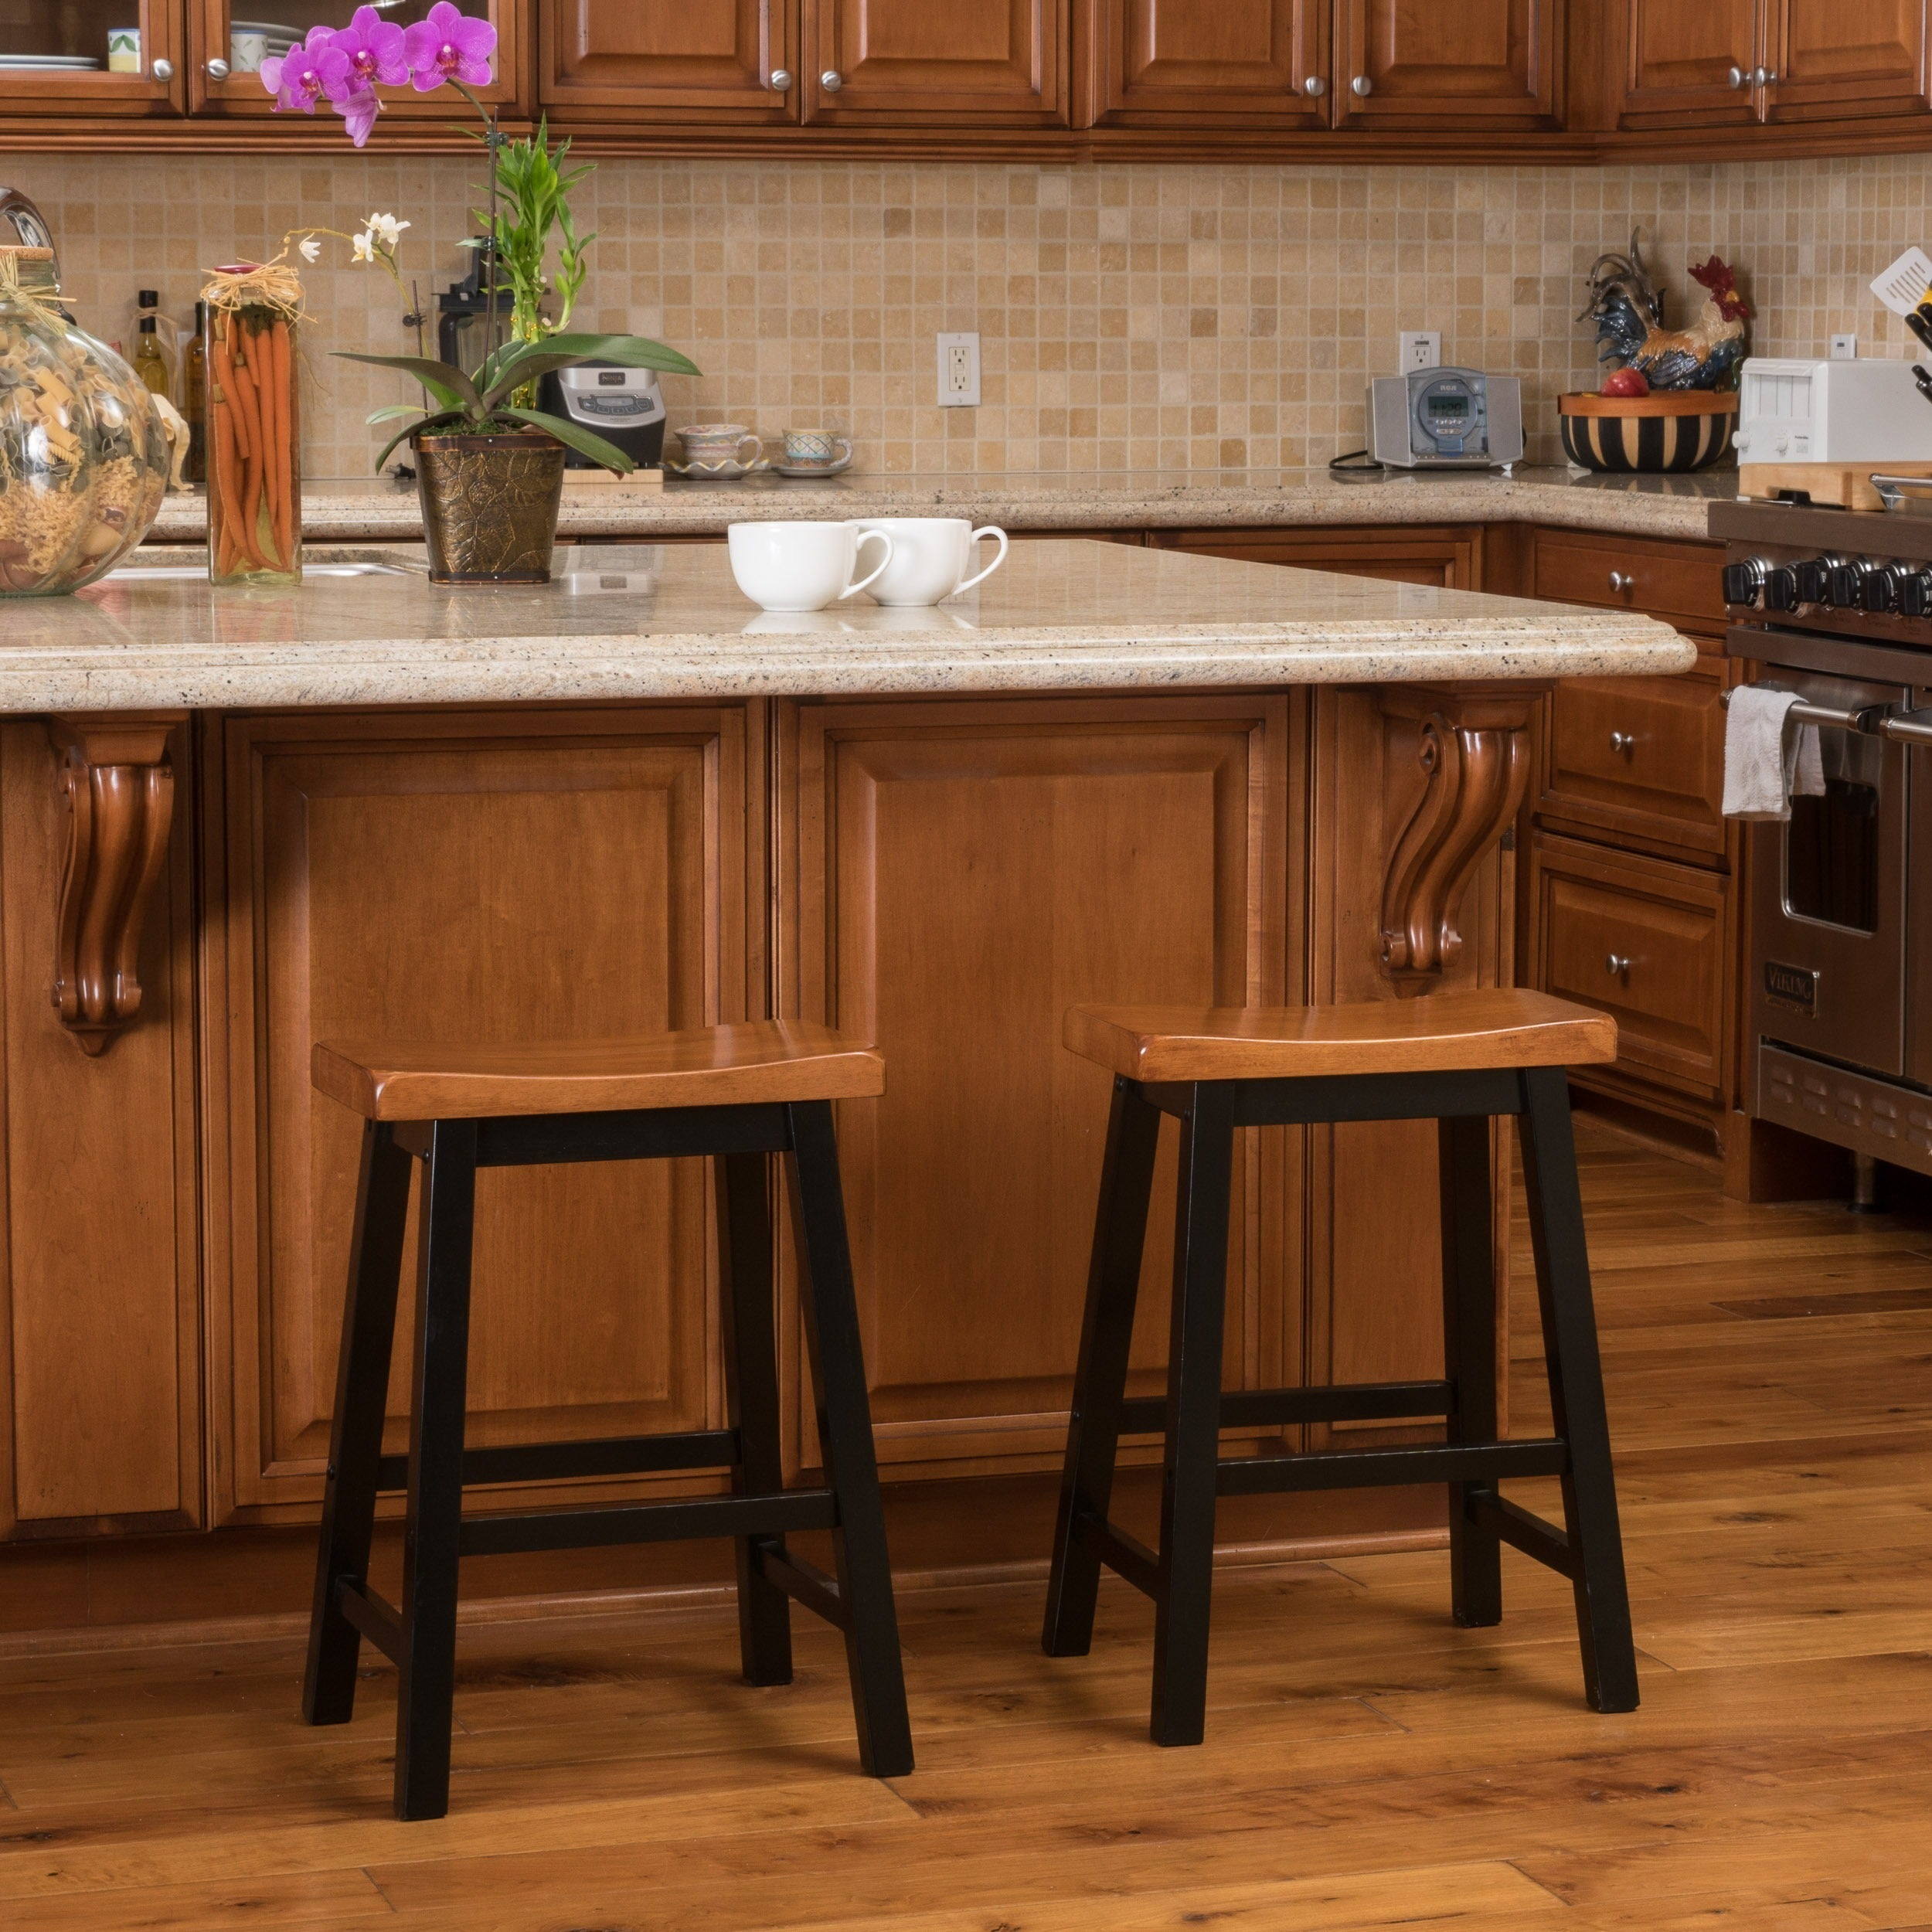 Pleasant Pomeroy 24 Inch Saddle Wood Counter Stool Set Of 2 By Christopher Knight Home Pdpeps Interior Chair Design Pdpepsorg